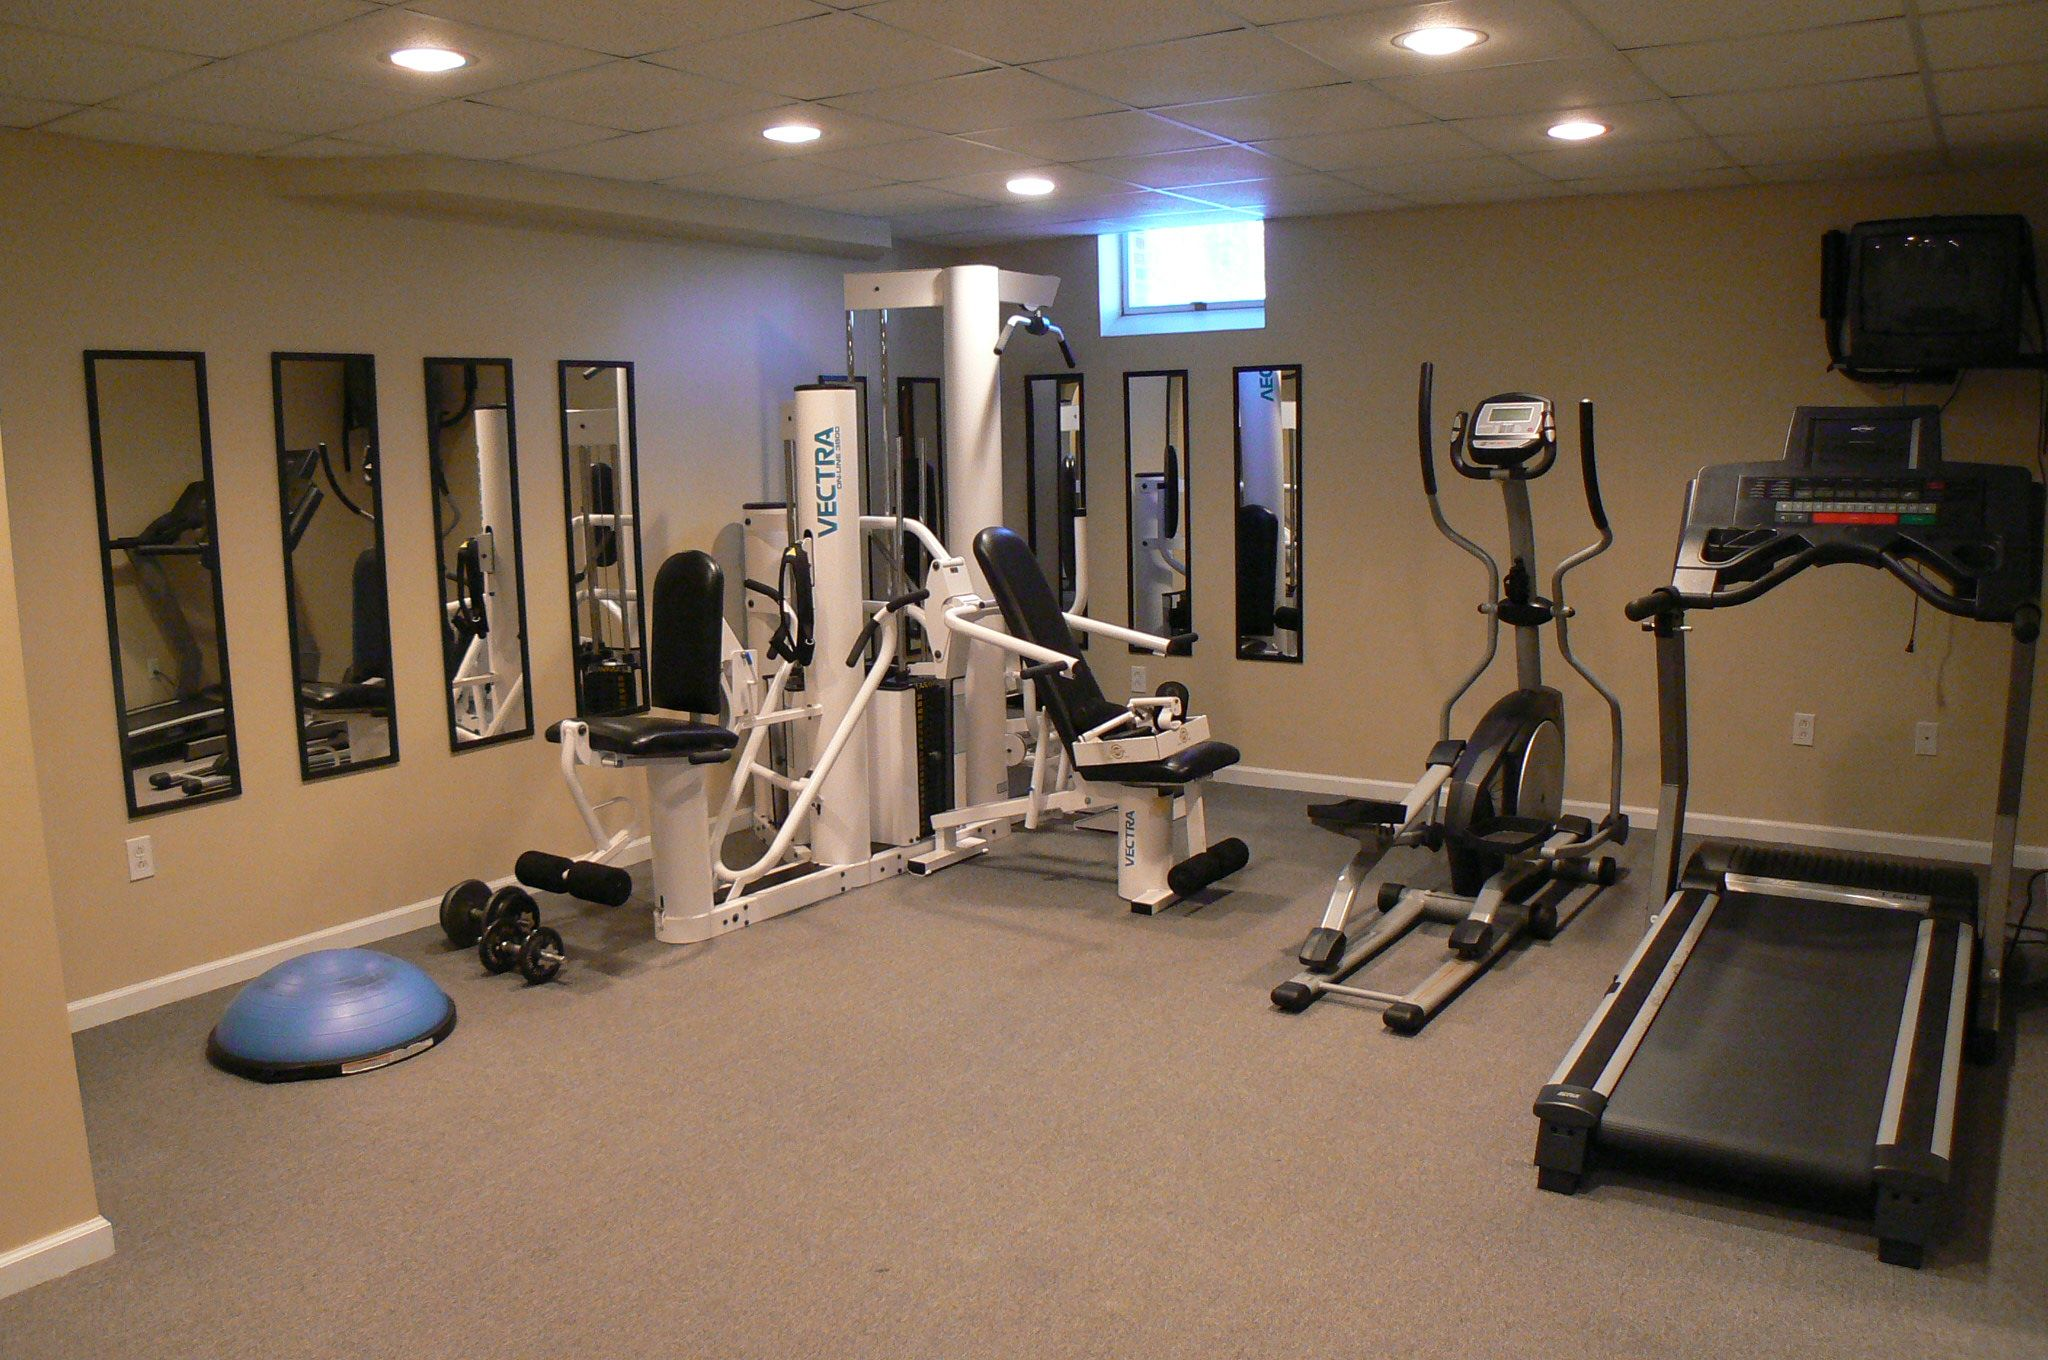 Weight room on pinterest home gyms basement gym and